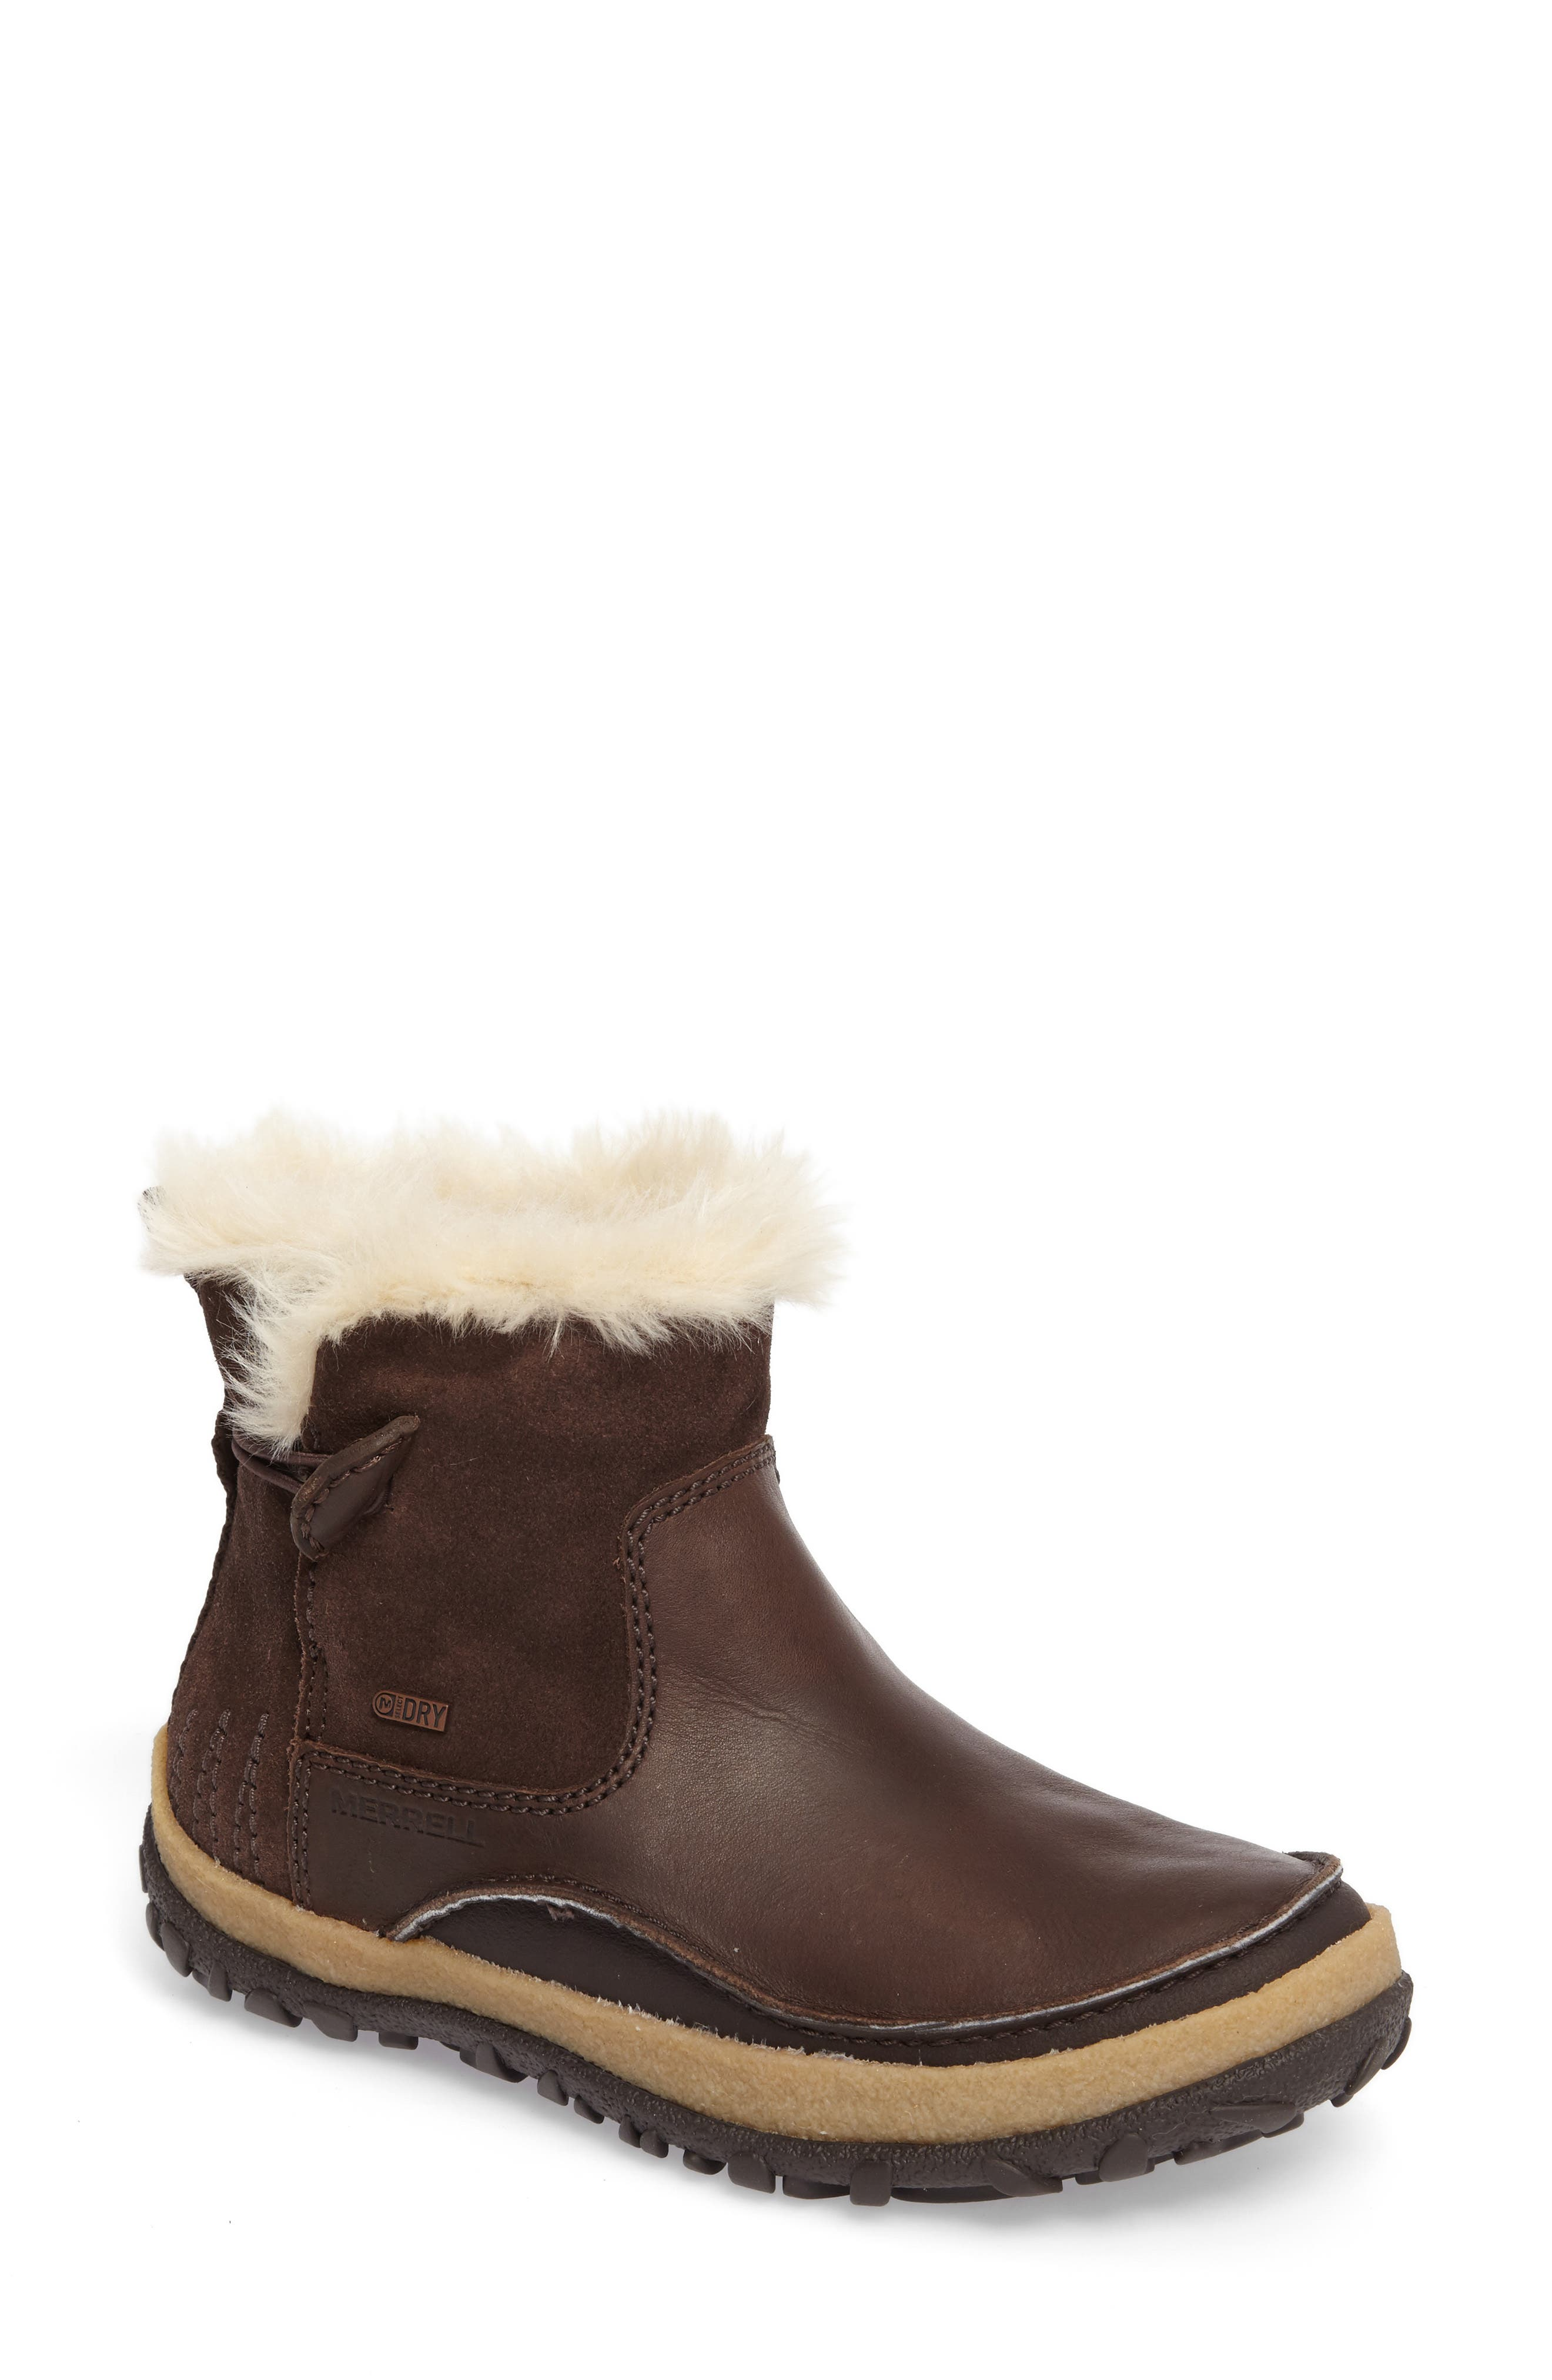 Tremblant Pull-On Polar Waterproof Bootie,                             Main thumbnail 1, color,                             Espresso Leather